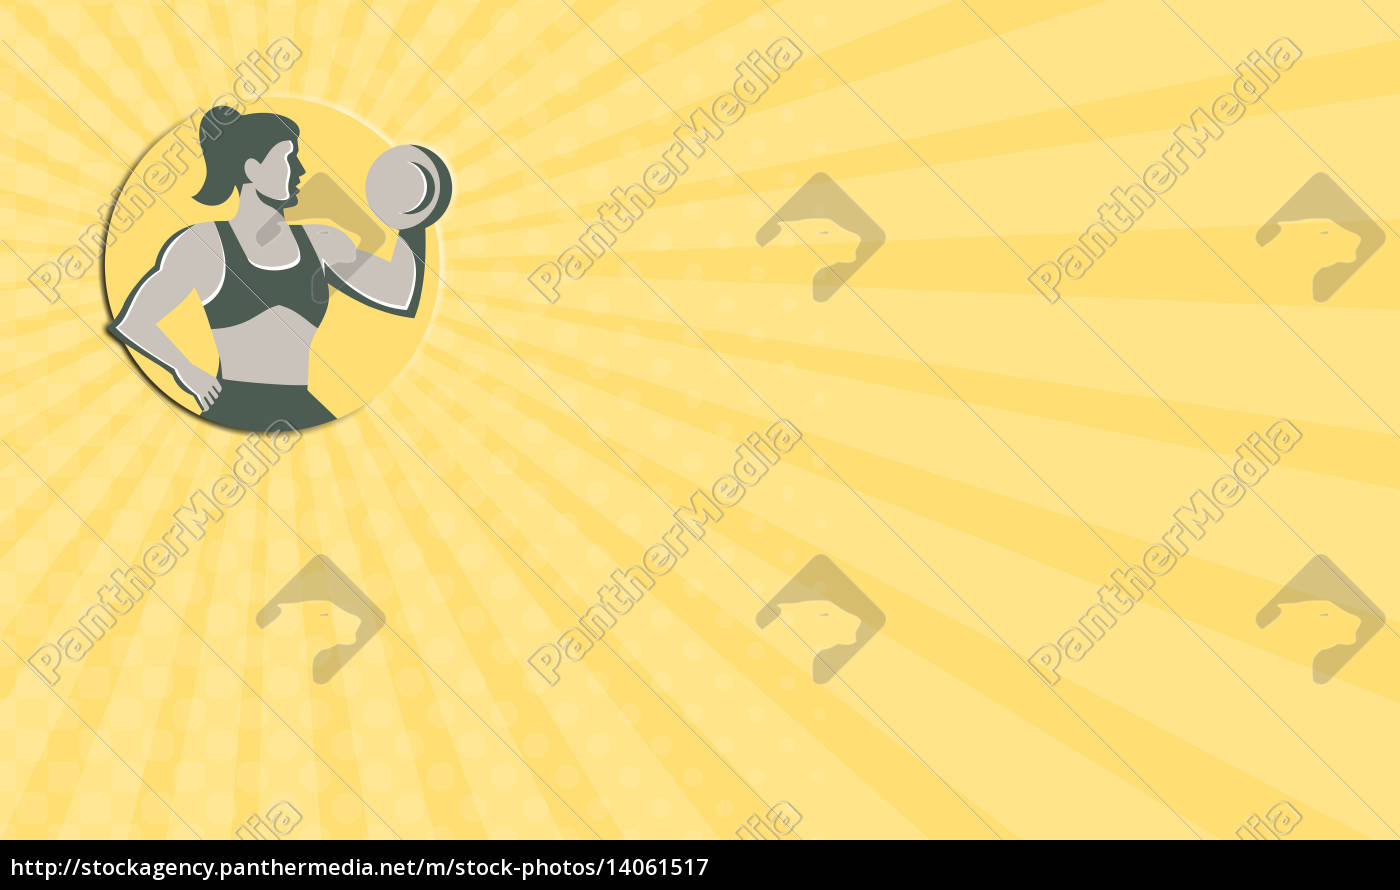 business, card, female, lifting, dumbbell, circle - 14061517